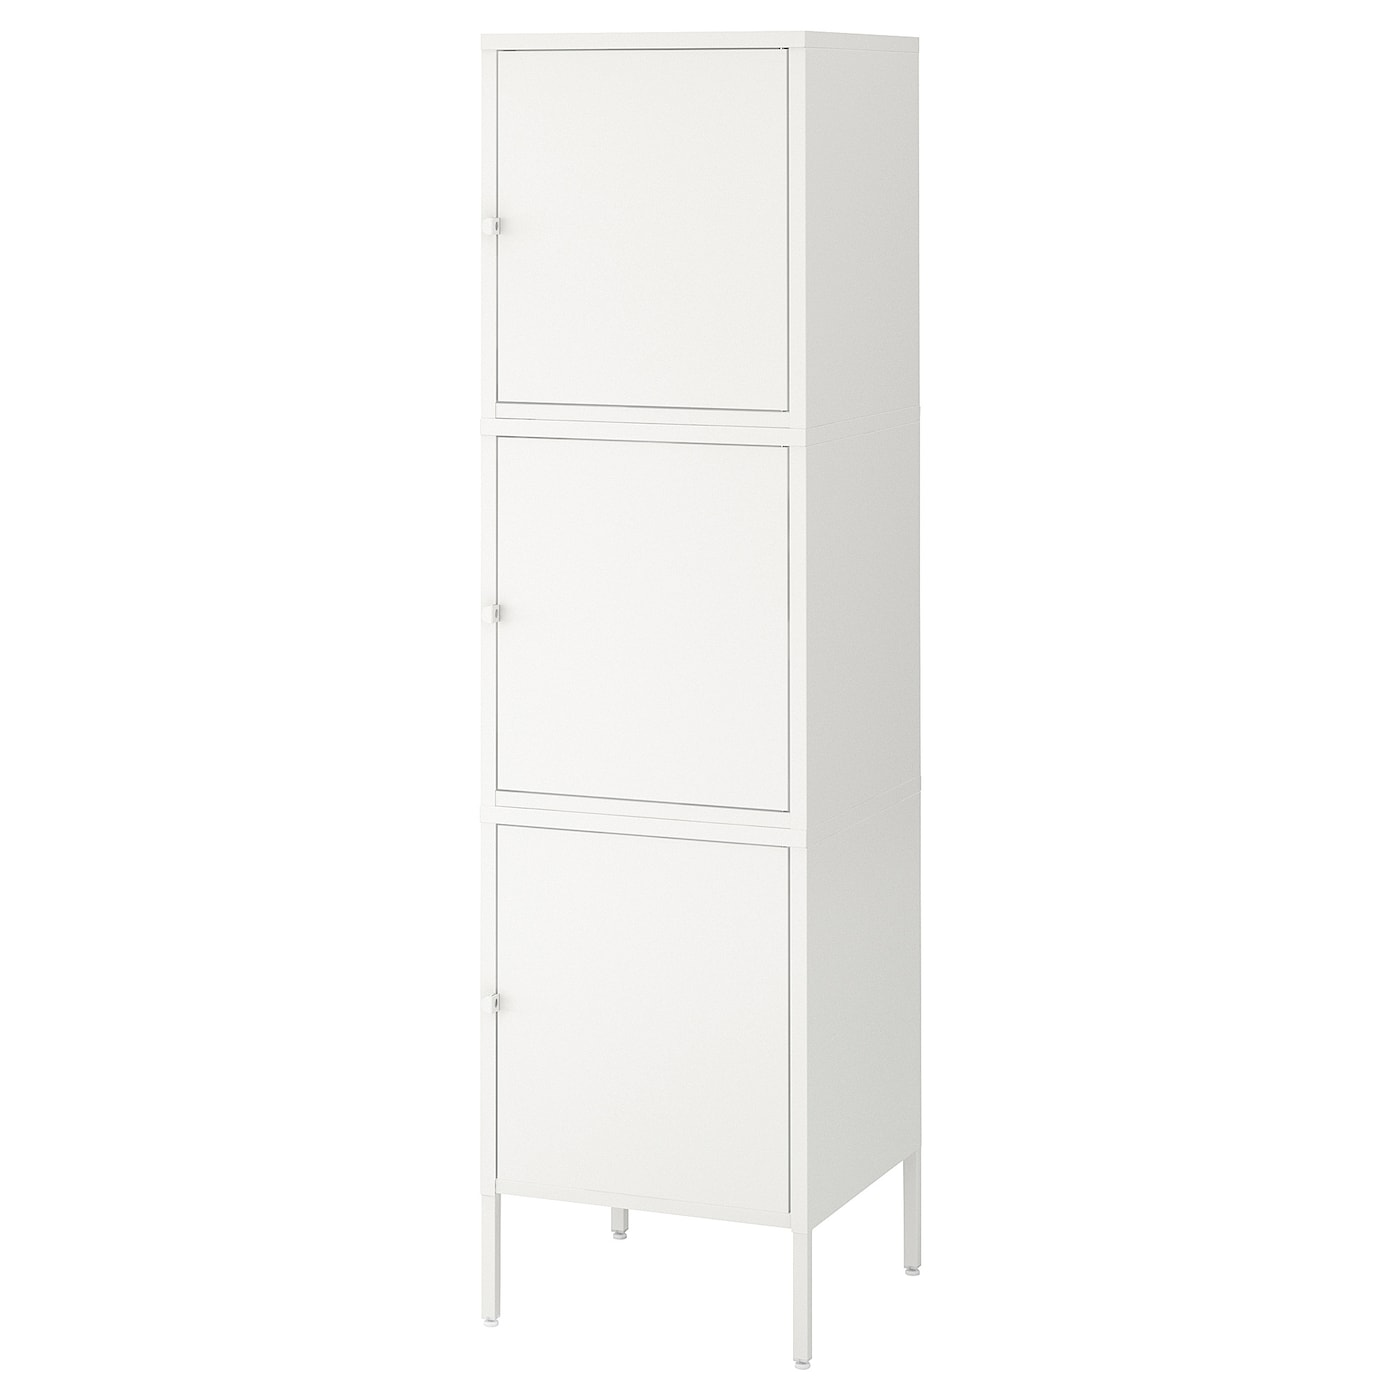 IKEA HÄLLAN storage combination with doors